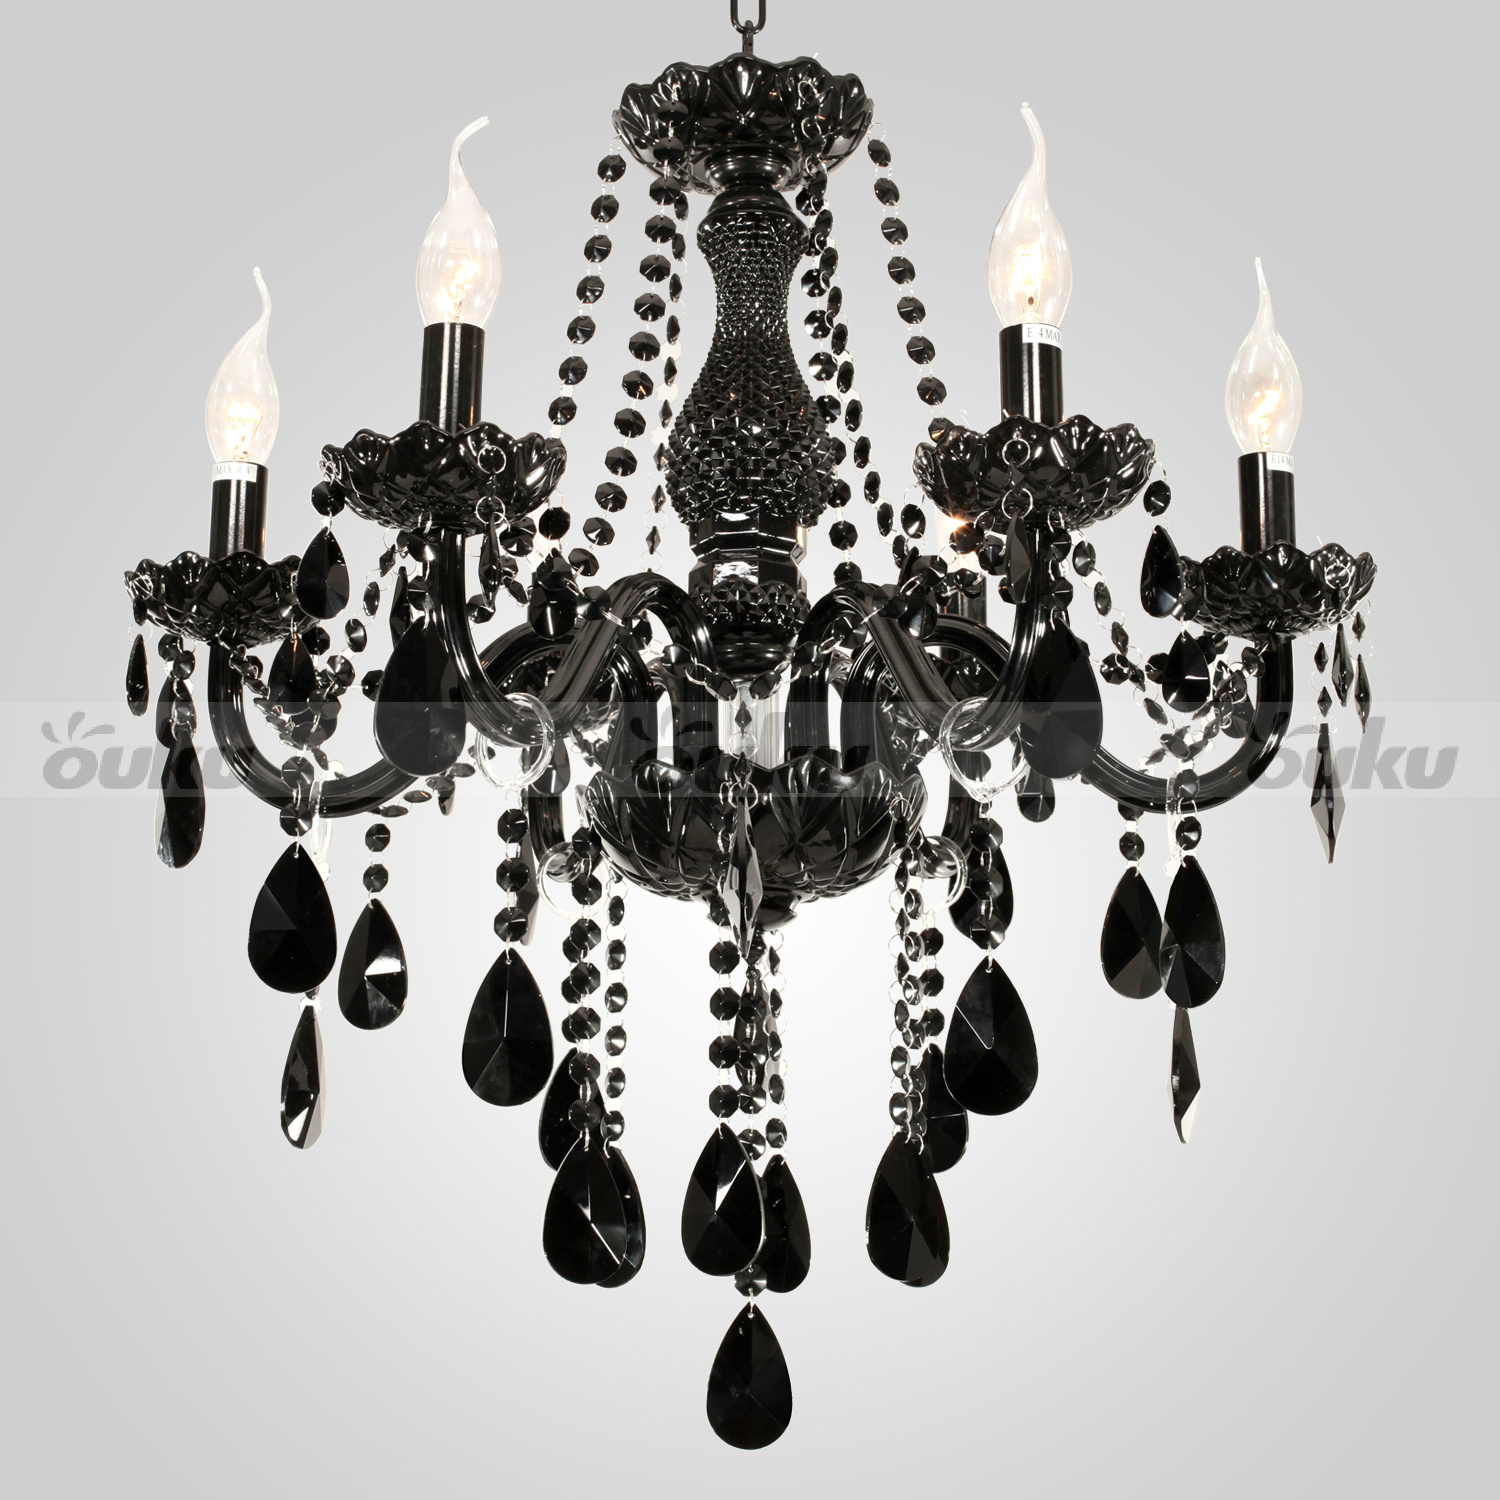 Modern candle ceiling 6 lights hanging crystal pendant Crystal candle chandelier